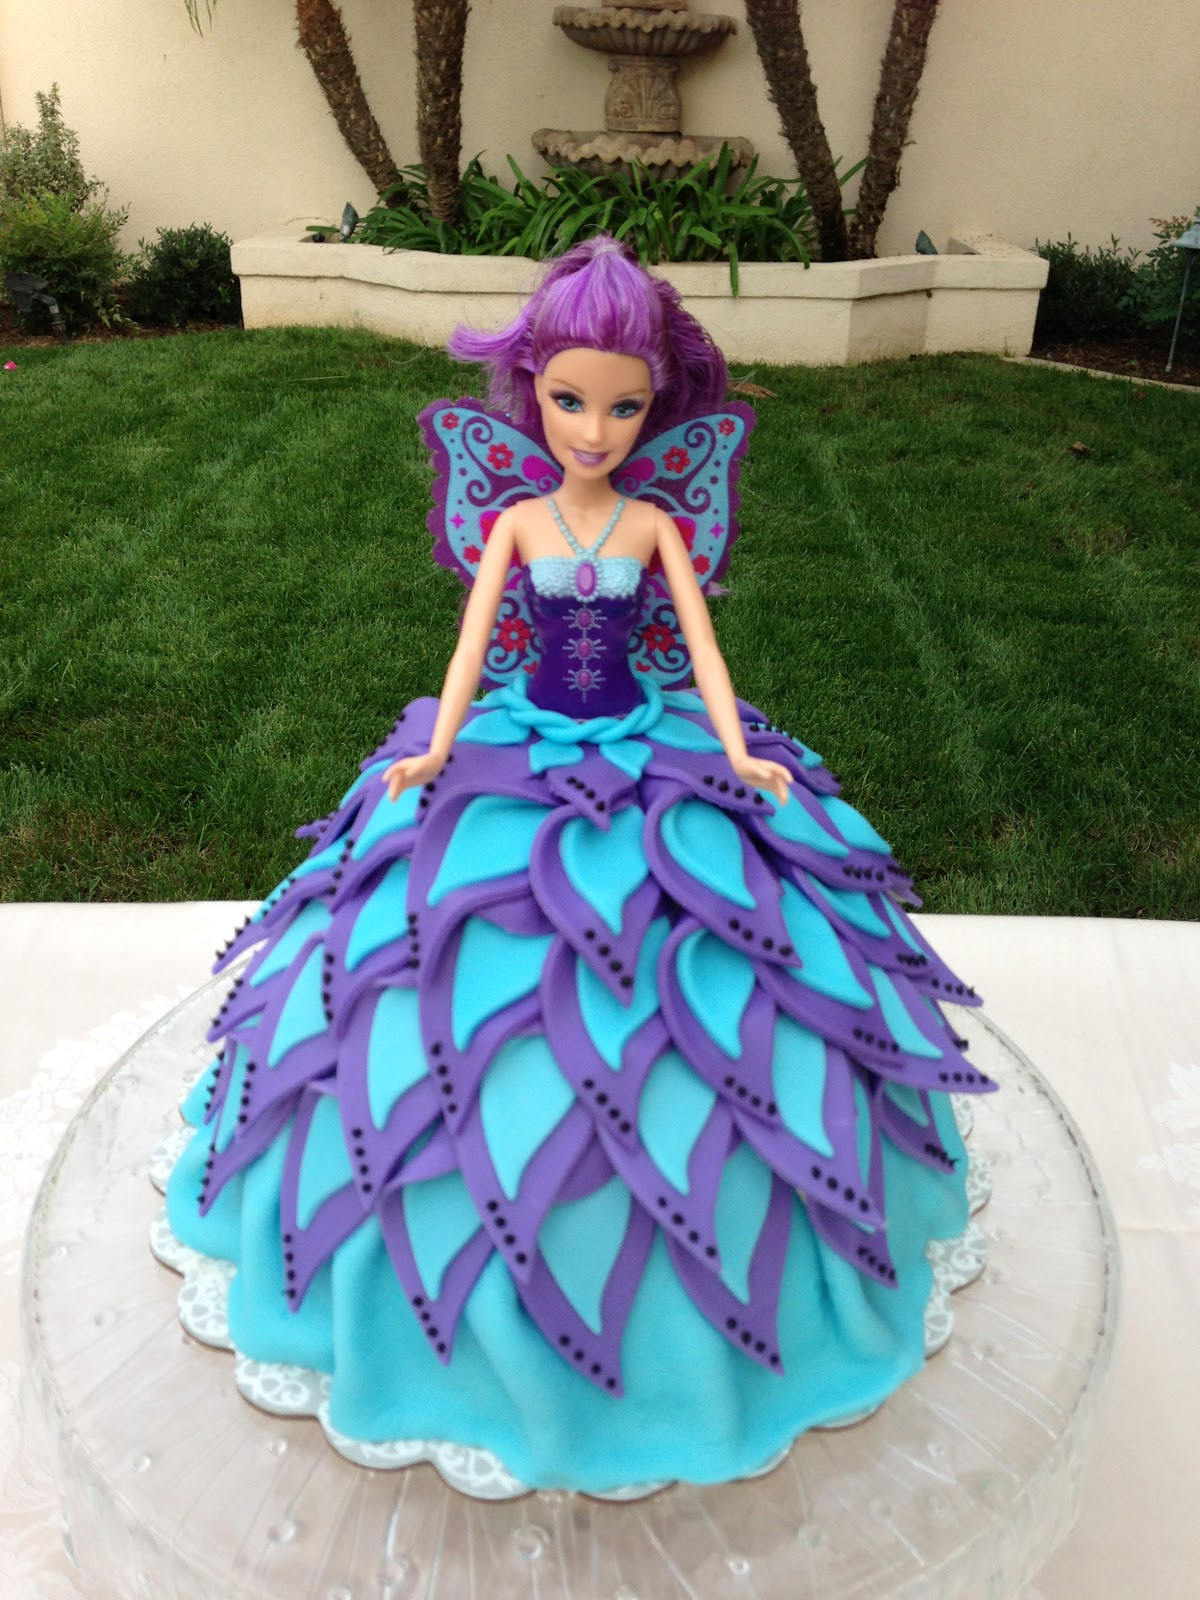 Fairy Princess Cake Images : Kaylynn Cakes: Birthday Cakes